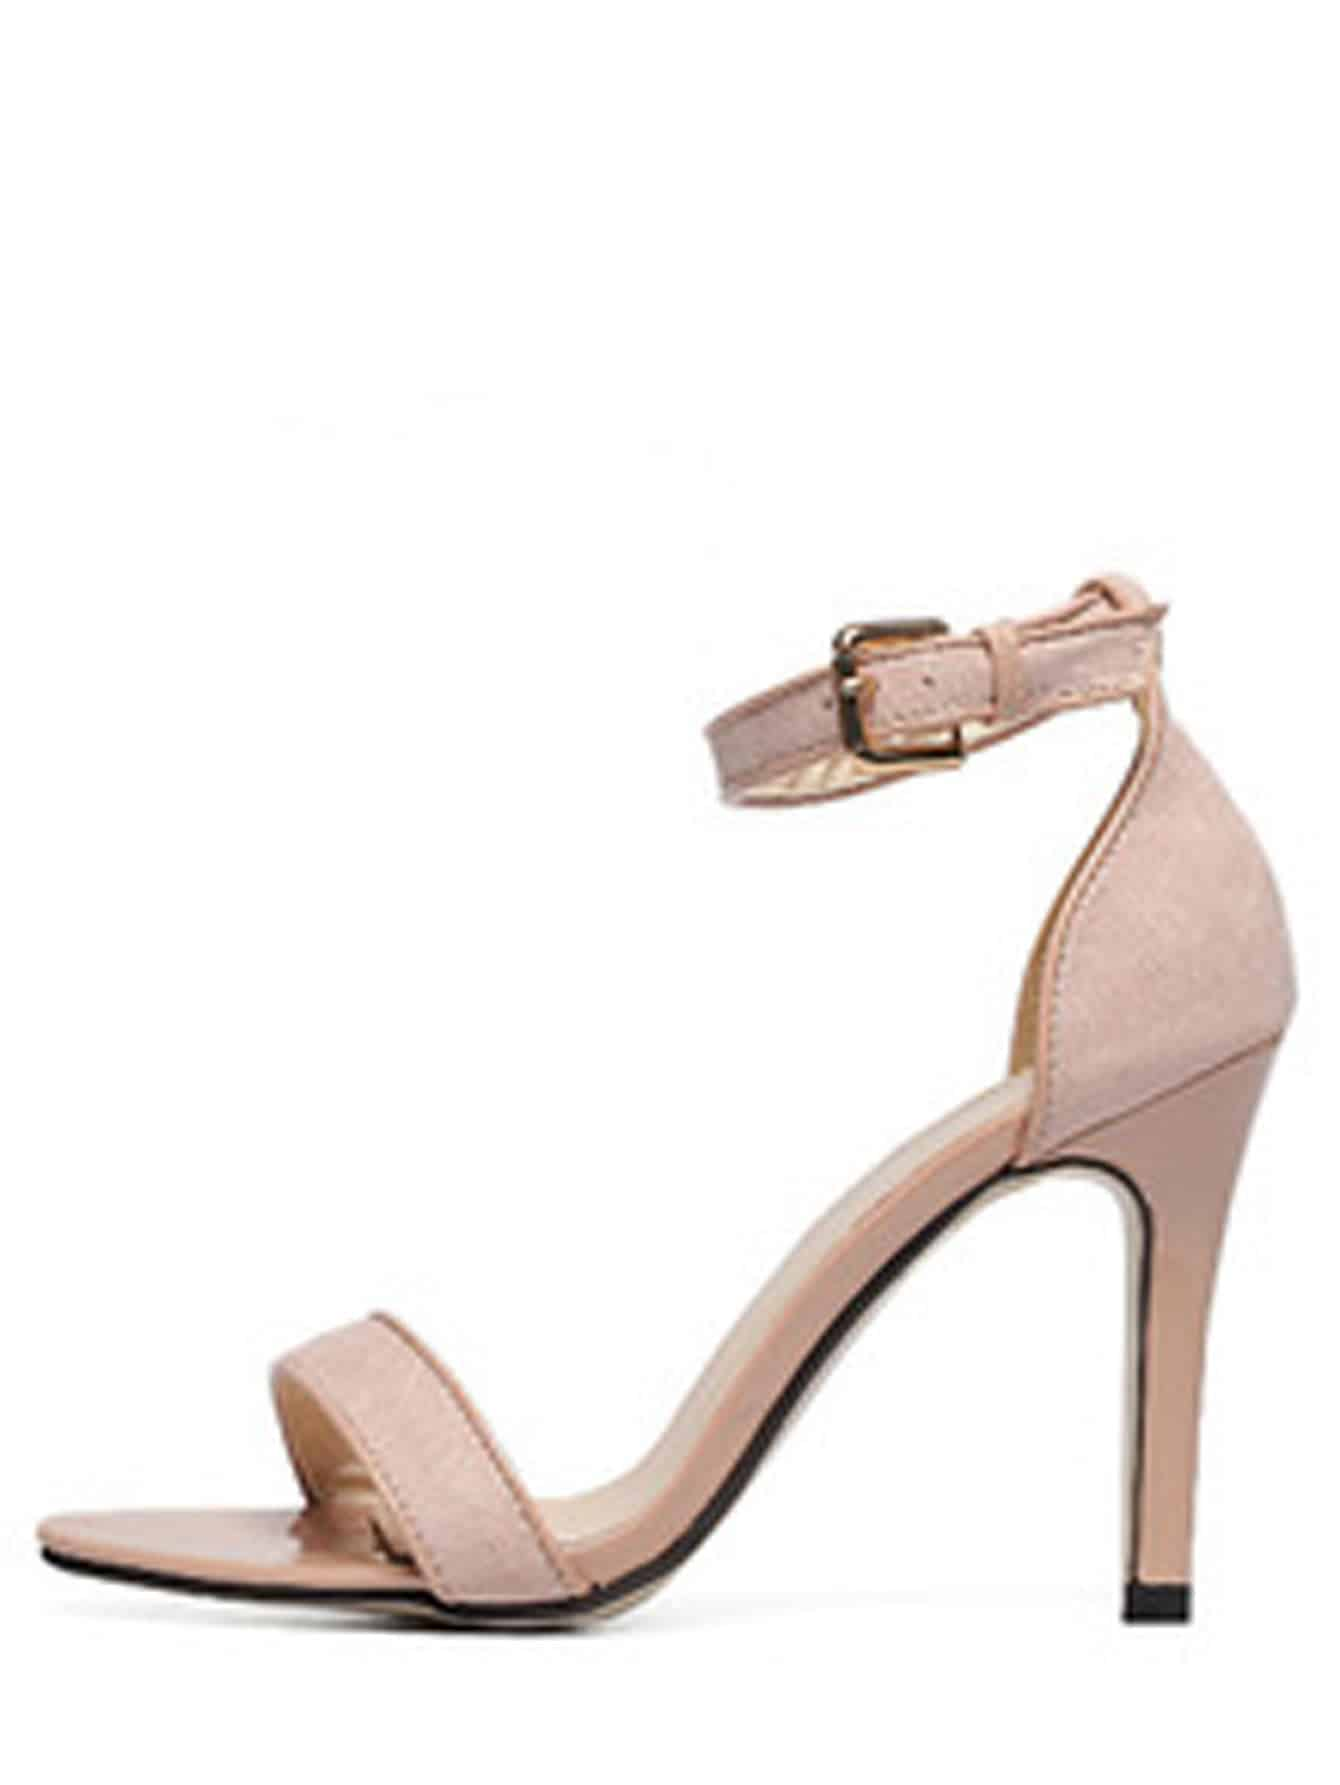 Apricot Open Toe Ankle Strap High Stiletto Sandals shoes160722822